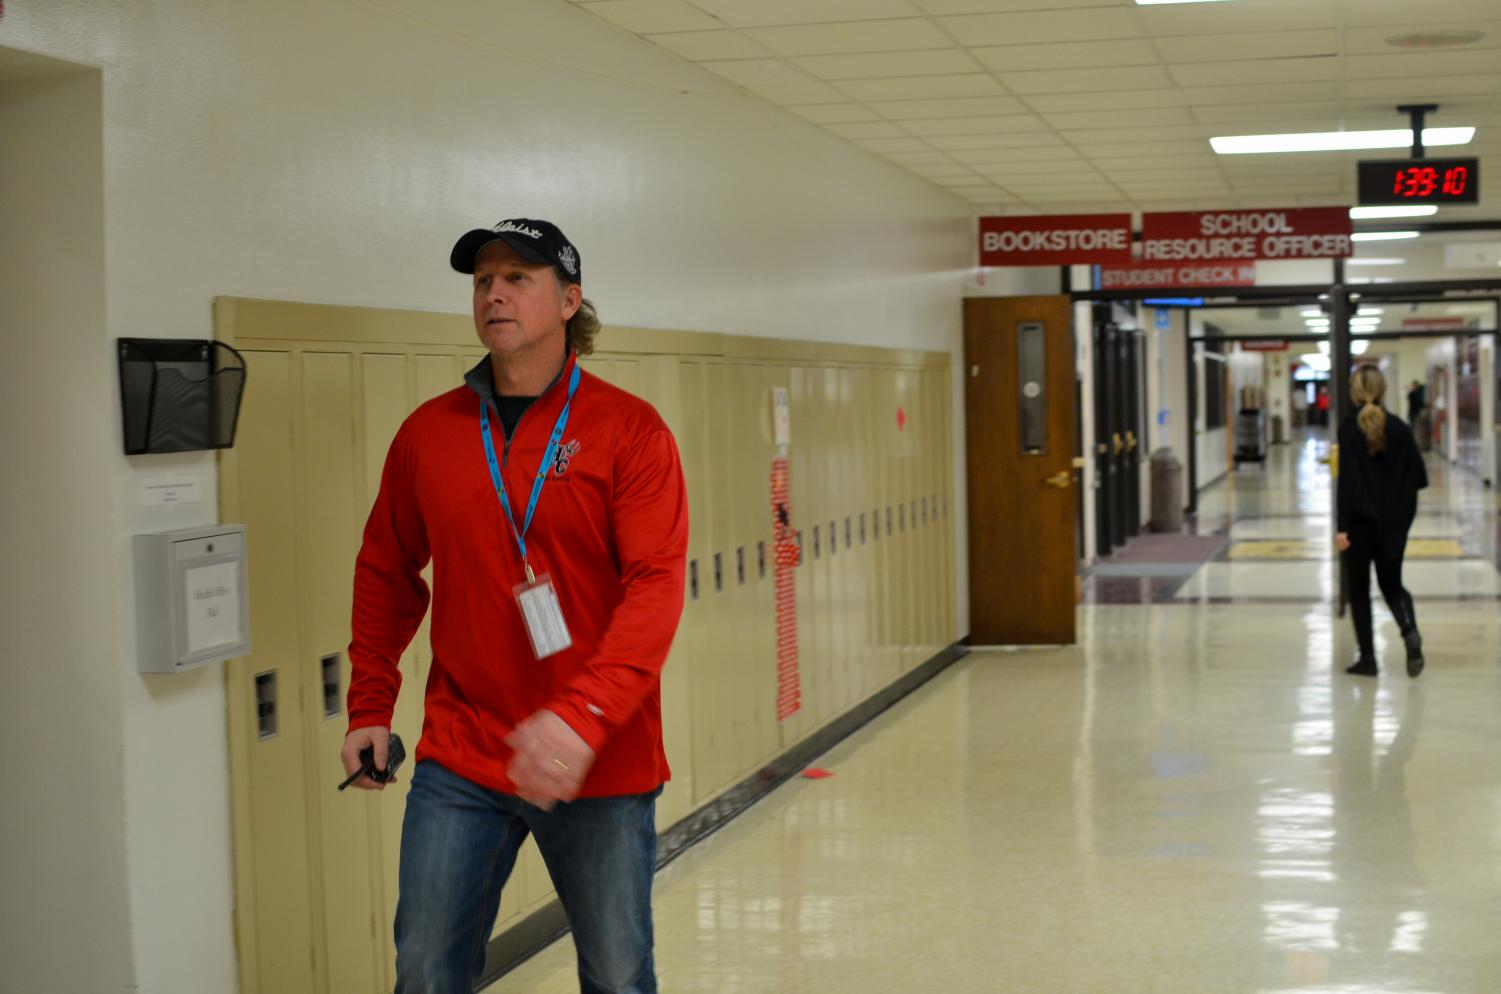 Hall monitors such as Mr. Simpson carry walkie-talkies around at all times in case of a school crisis.